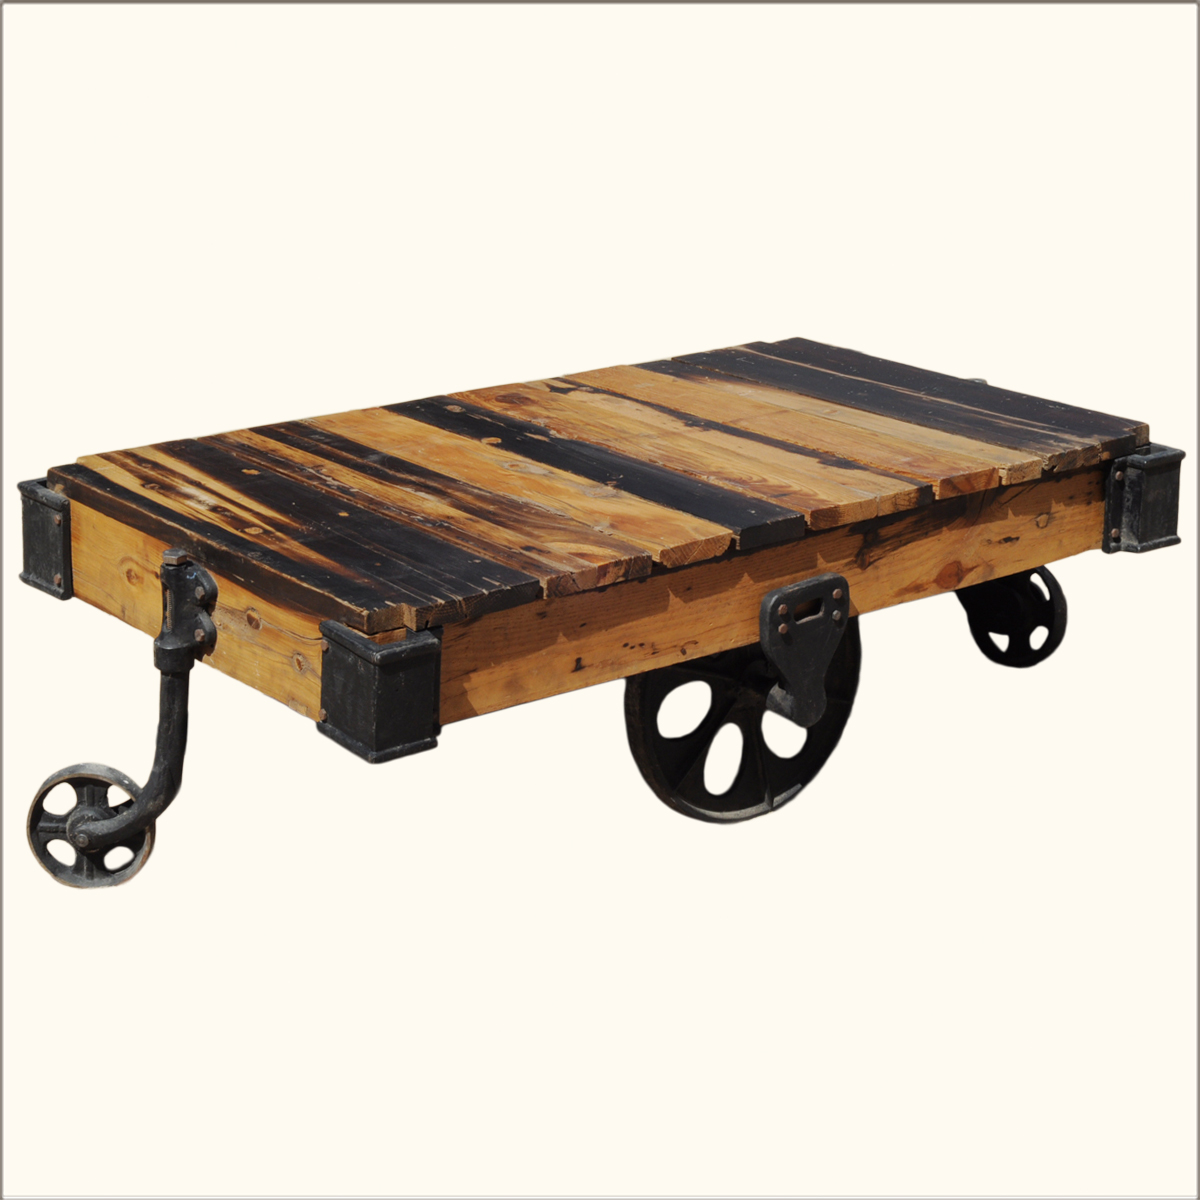 Vintage rustic reclaimed wood factory cart coffee table on wheel Antique wheels for coffee table